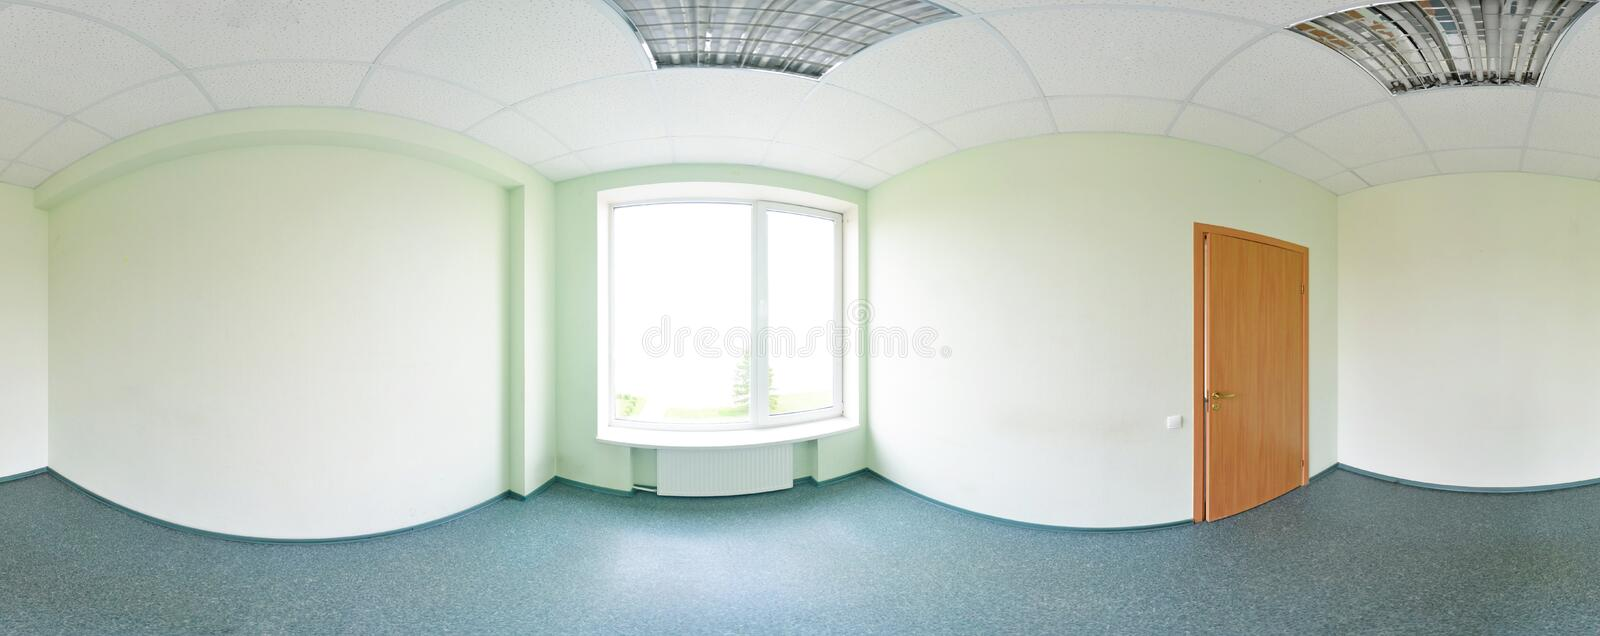 Spherical 360 degrees panorama projection, panorama in interior empty room in modern flat apartments green tone. royalty free stock image